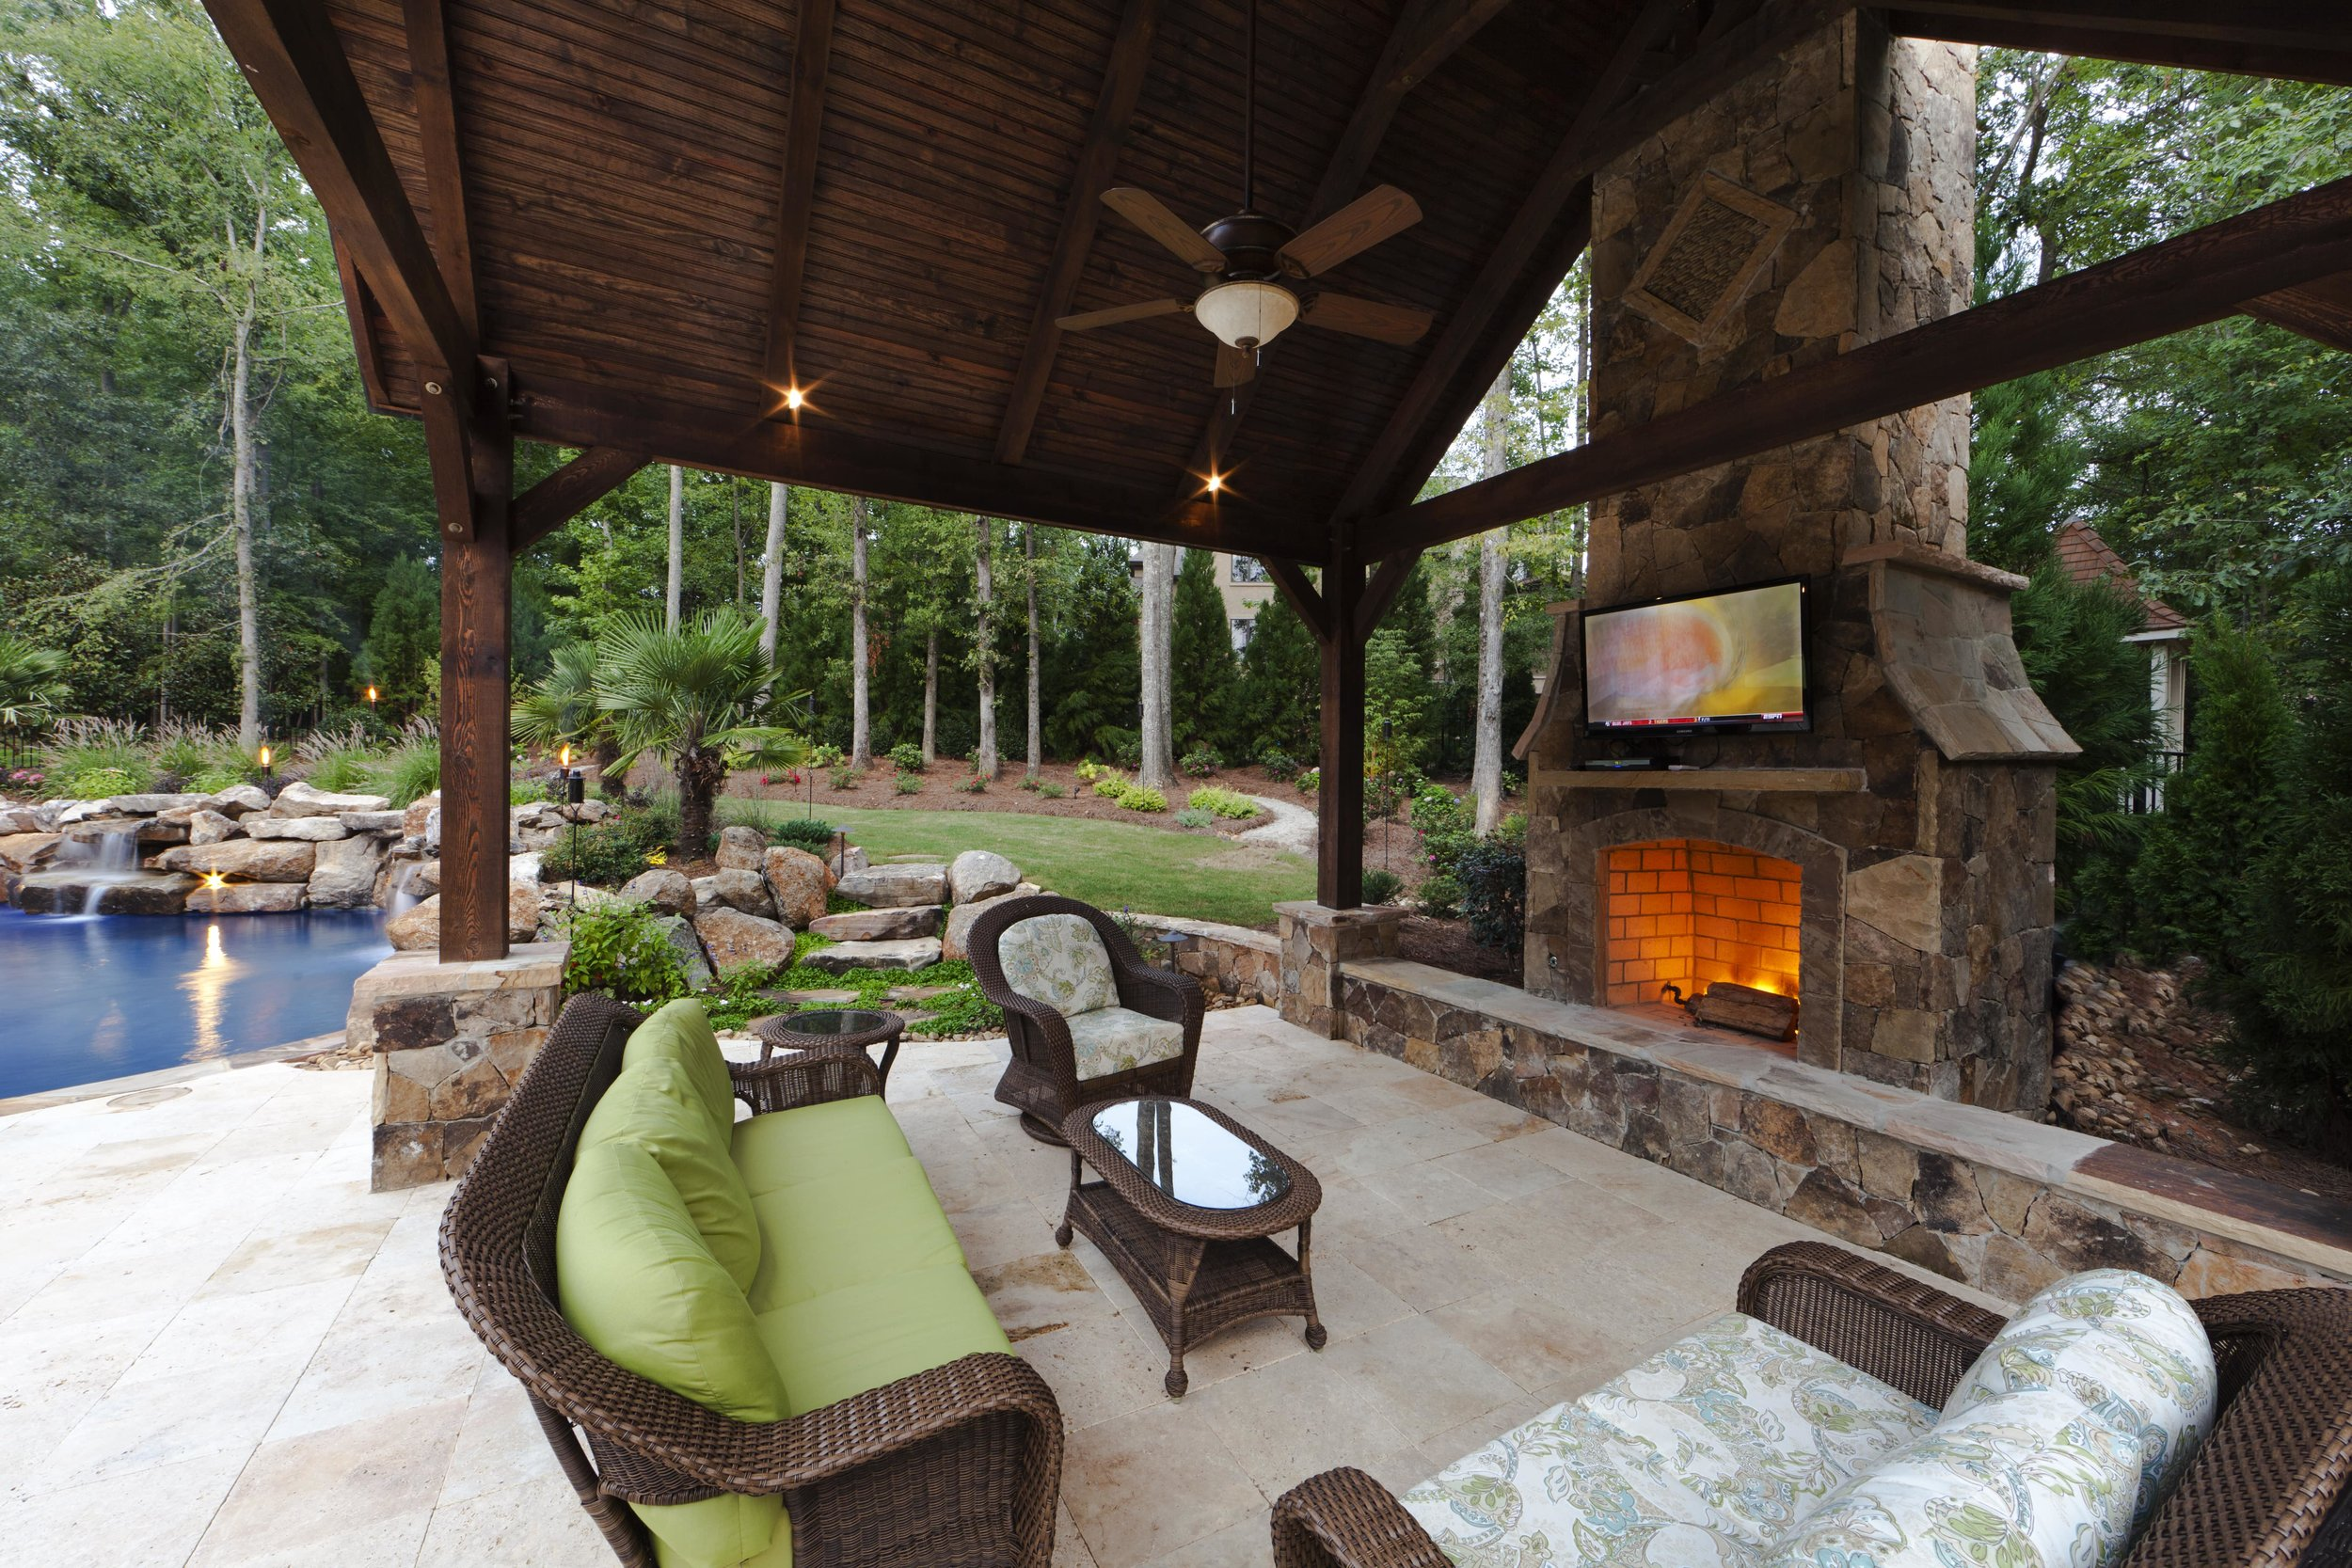 Rustic vaulted cabana that can be used most of the year with the wood burning fireplace.  A great place to cozy up to the fire and watch the game.